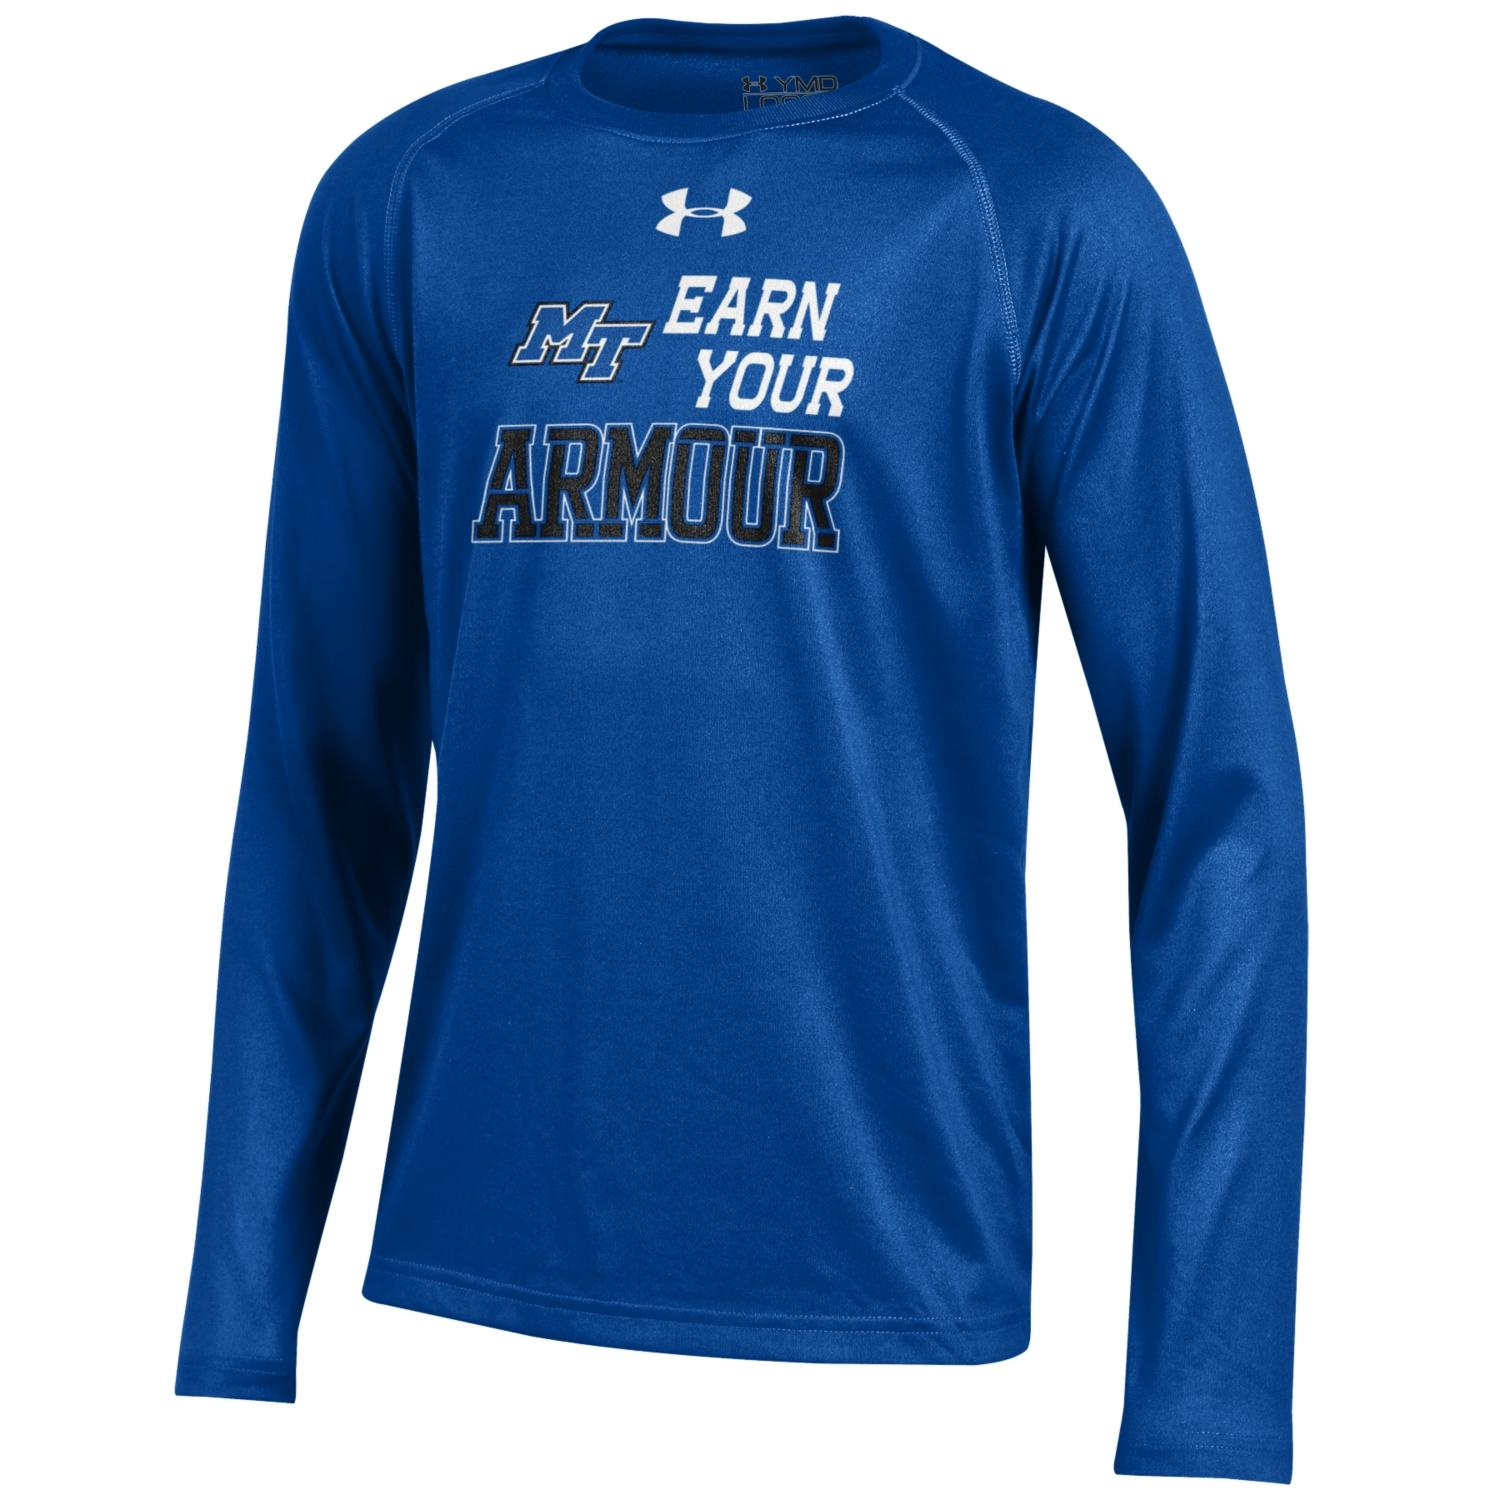 MT Earn Your Armour Youth Long Sleeve Tech Shirt